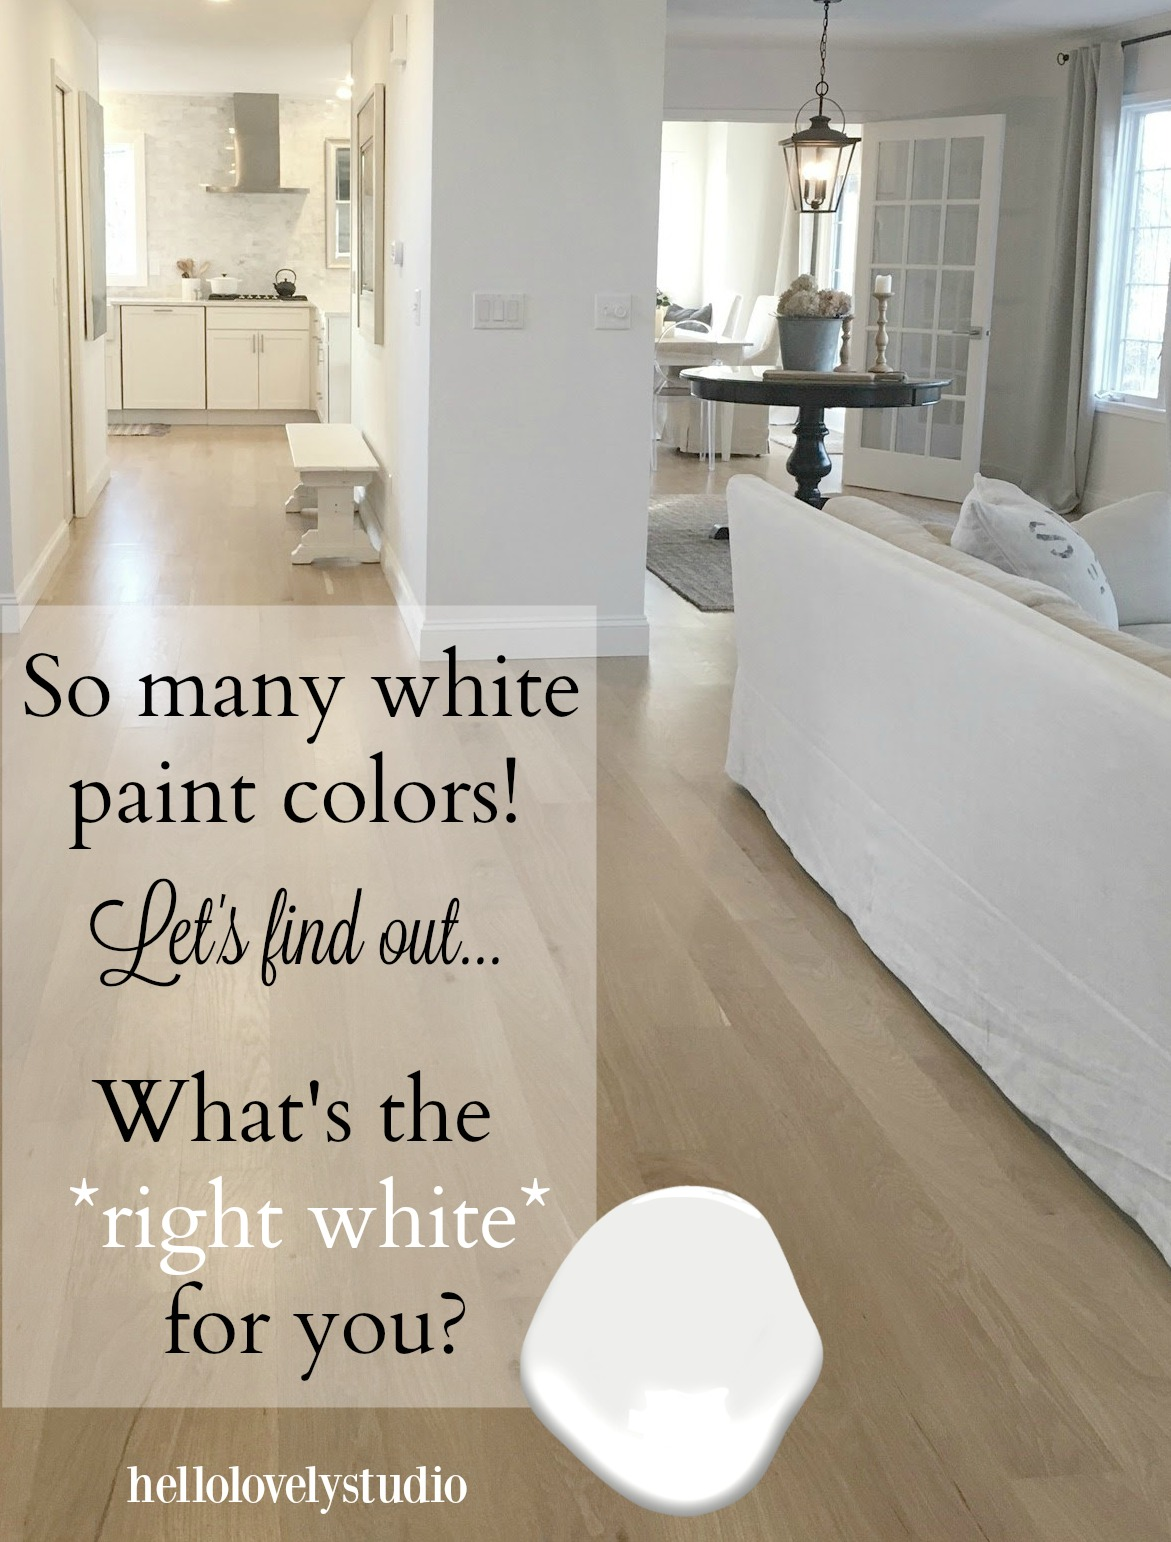 So many white paint colors! Let's find out what's the right white paint for you. Help for choosing the perfect white paint color for your walls from design experts on Hello Lovely Studio